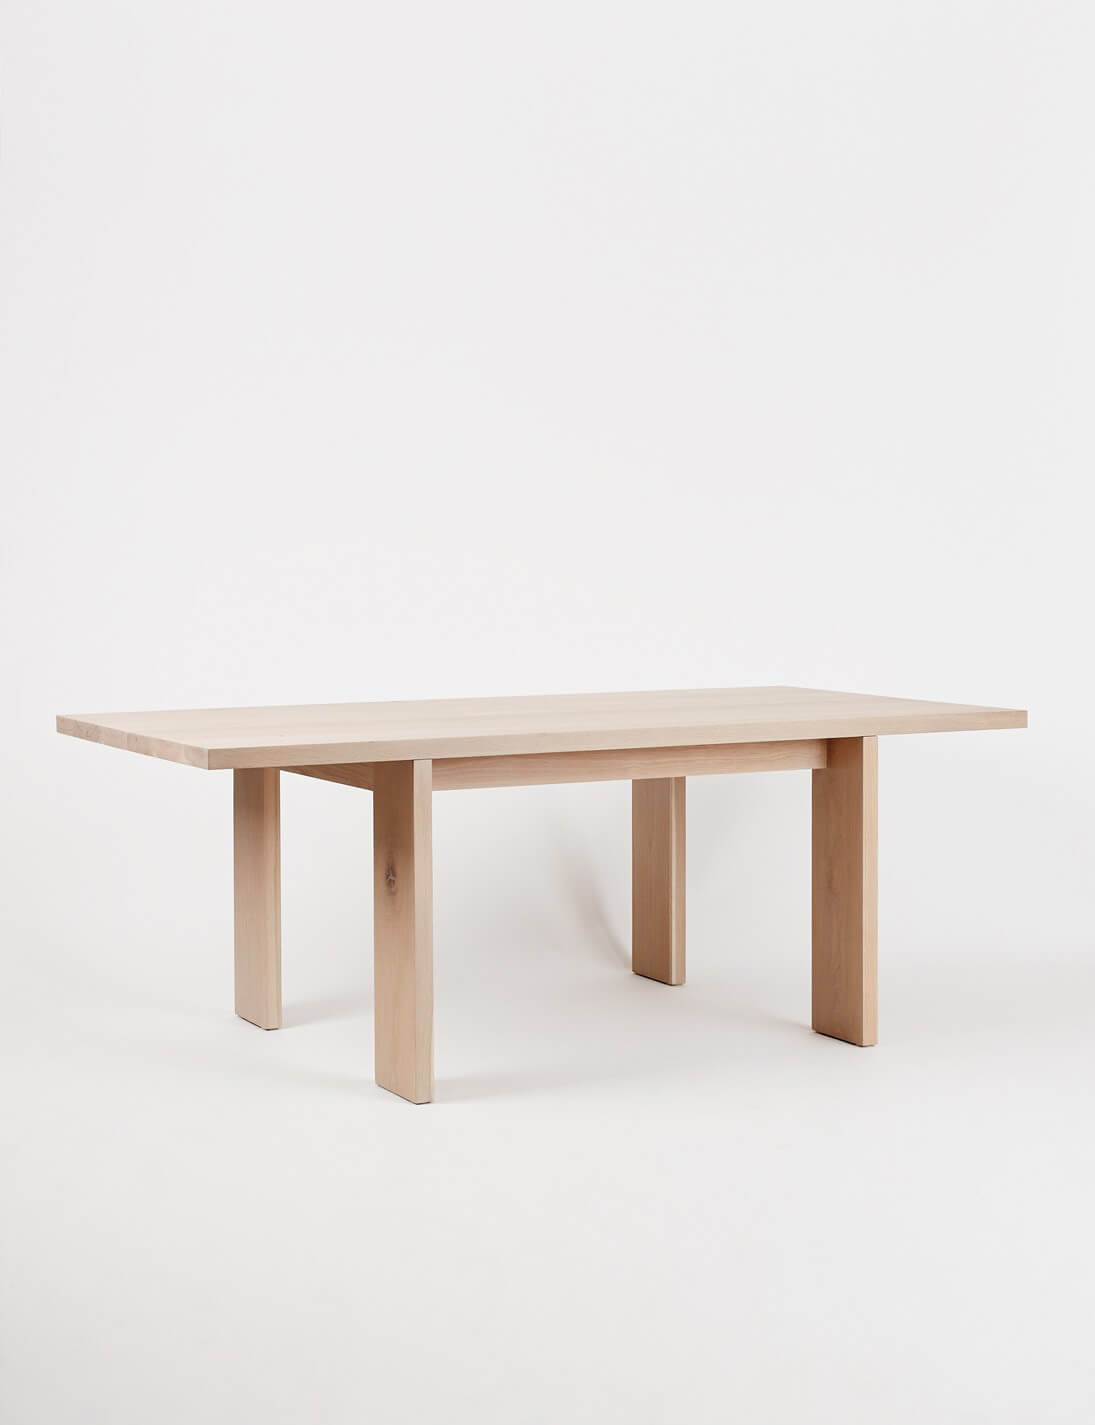 est living design directory abode living noma table.01